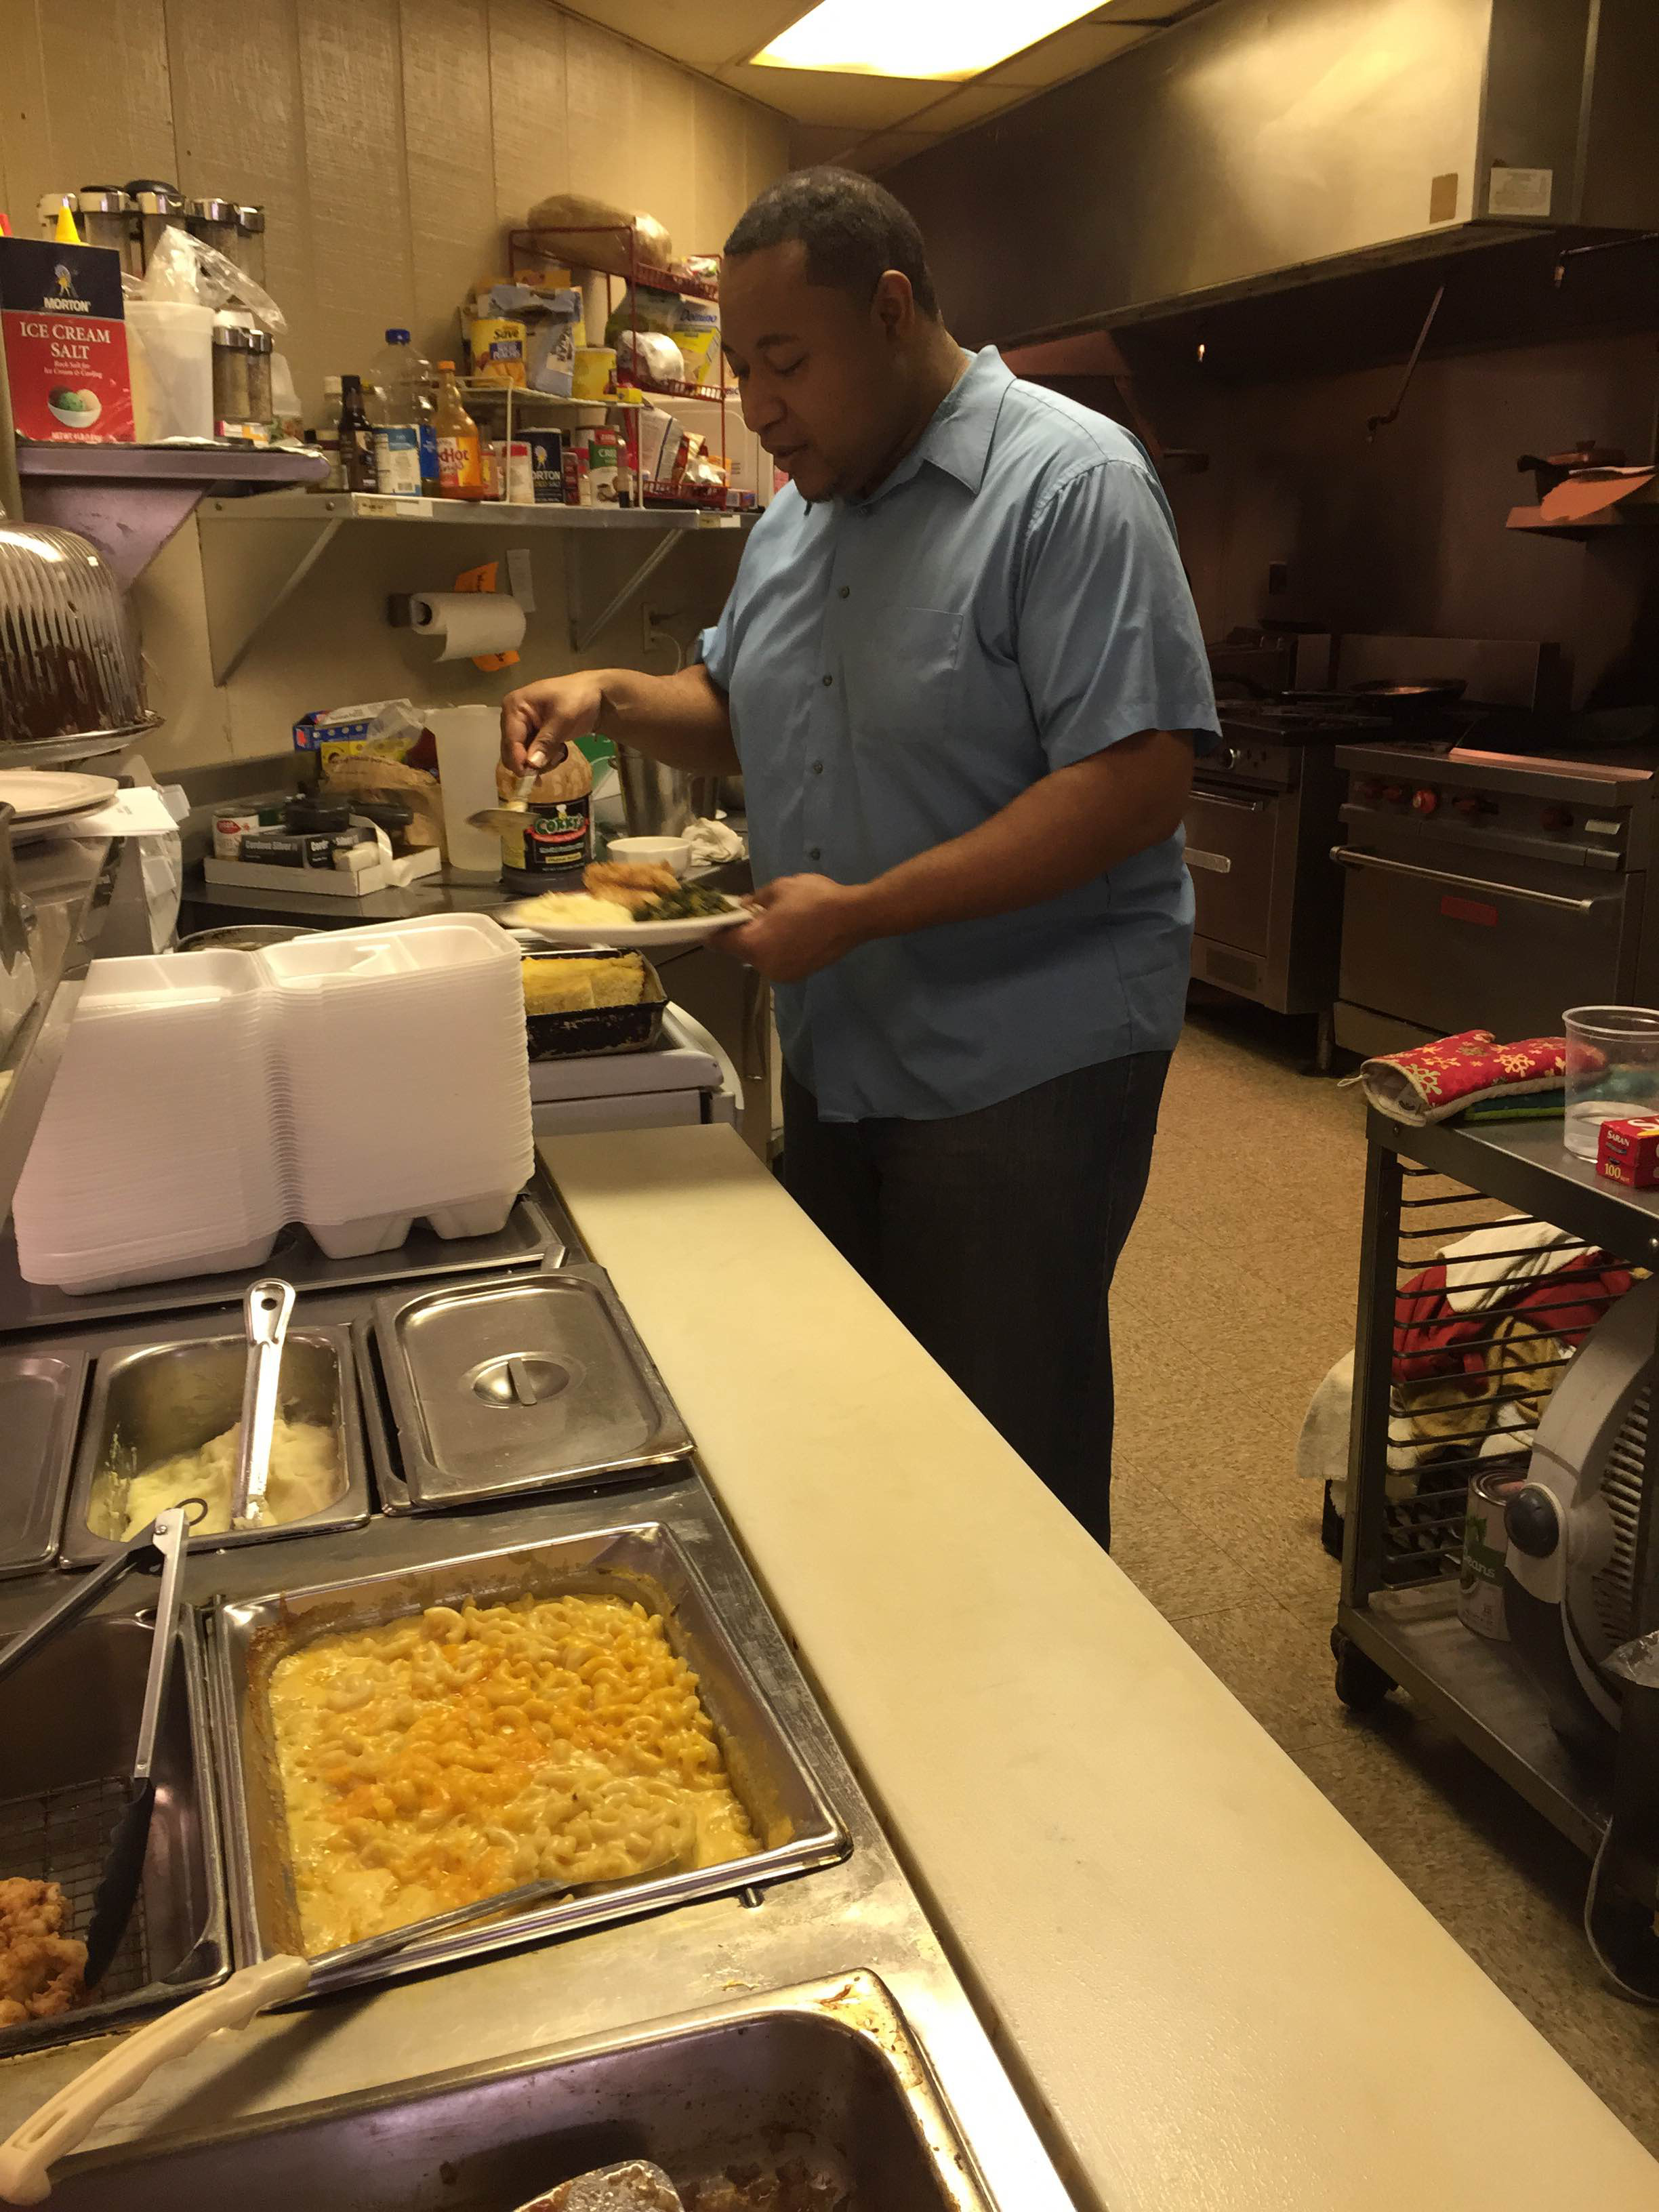 Woodard Cooks up great food inside local gas station